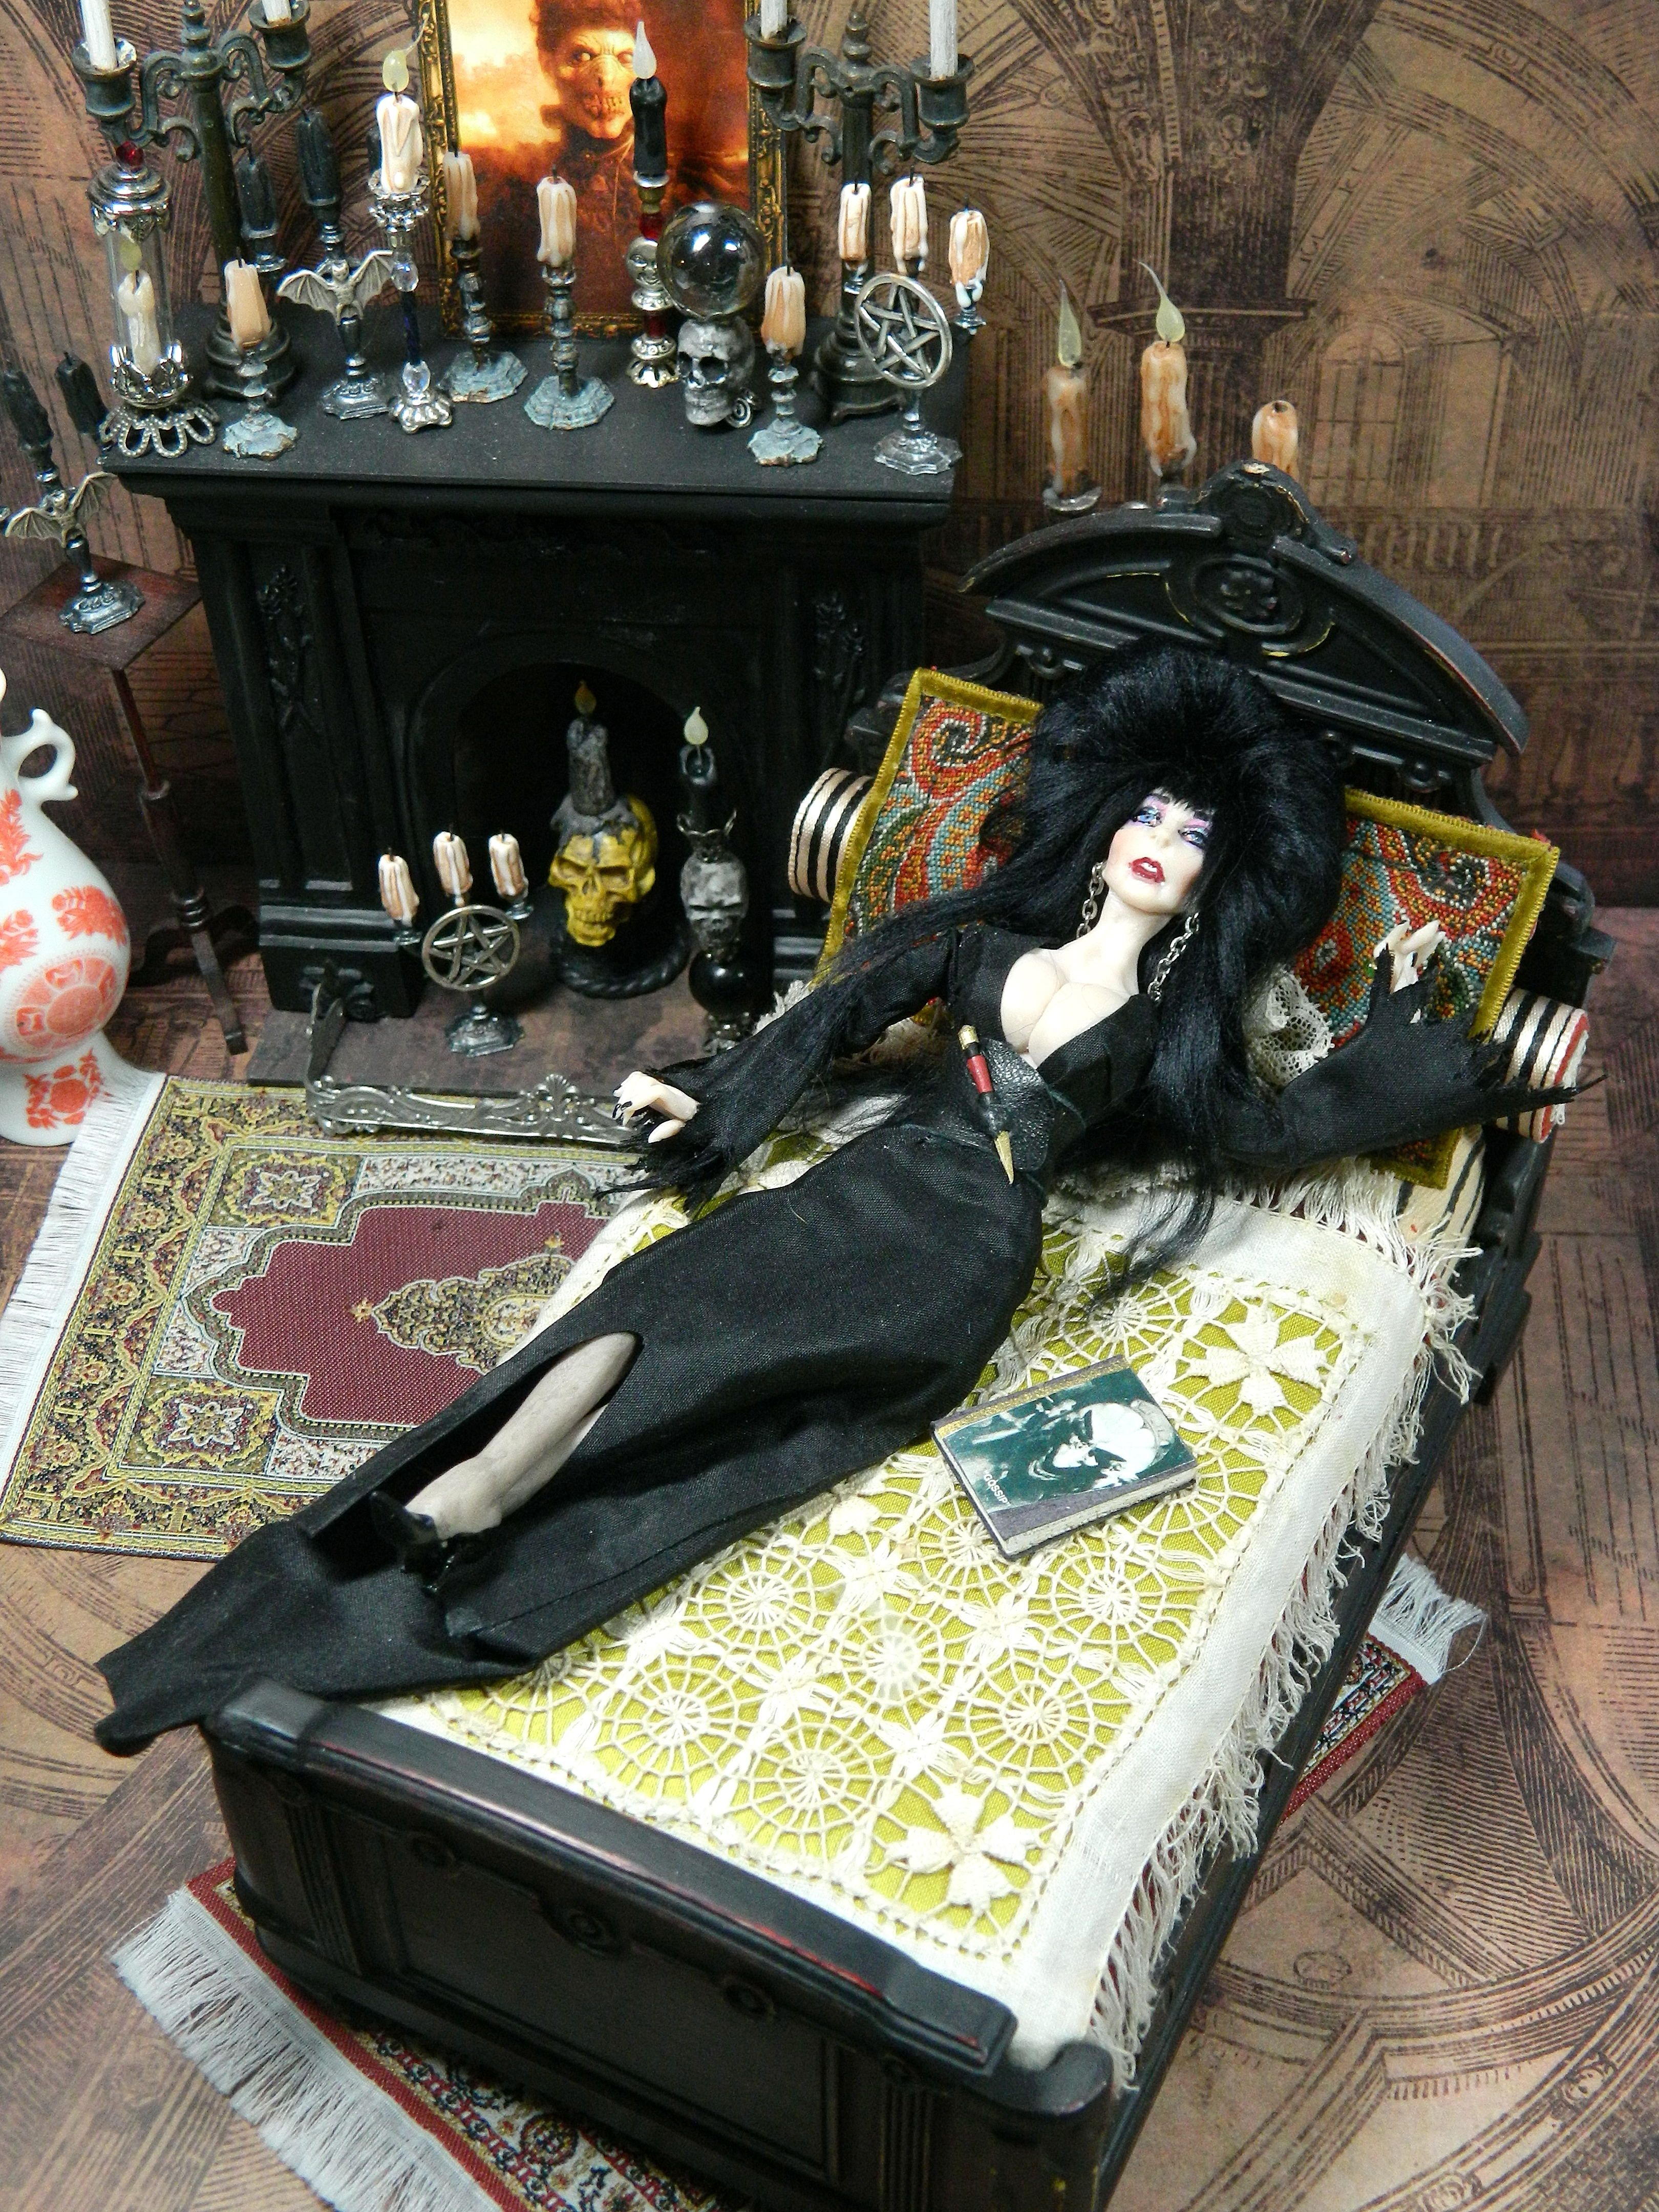 The beautiful and sexy Elvira, Mistress of The Dark. Created by LoreleiBlu, Elvira is a 5 3/4 inch tall and poseable miniature doll. To see more creations visit LoreleiBlu on Etsy.com or on FaceBook at LoreleiBlu. #haunteddollhouse